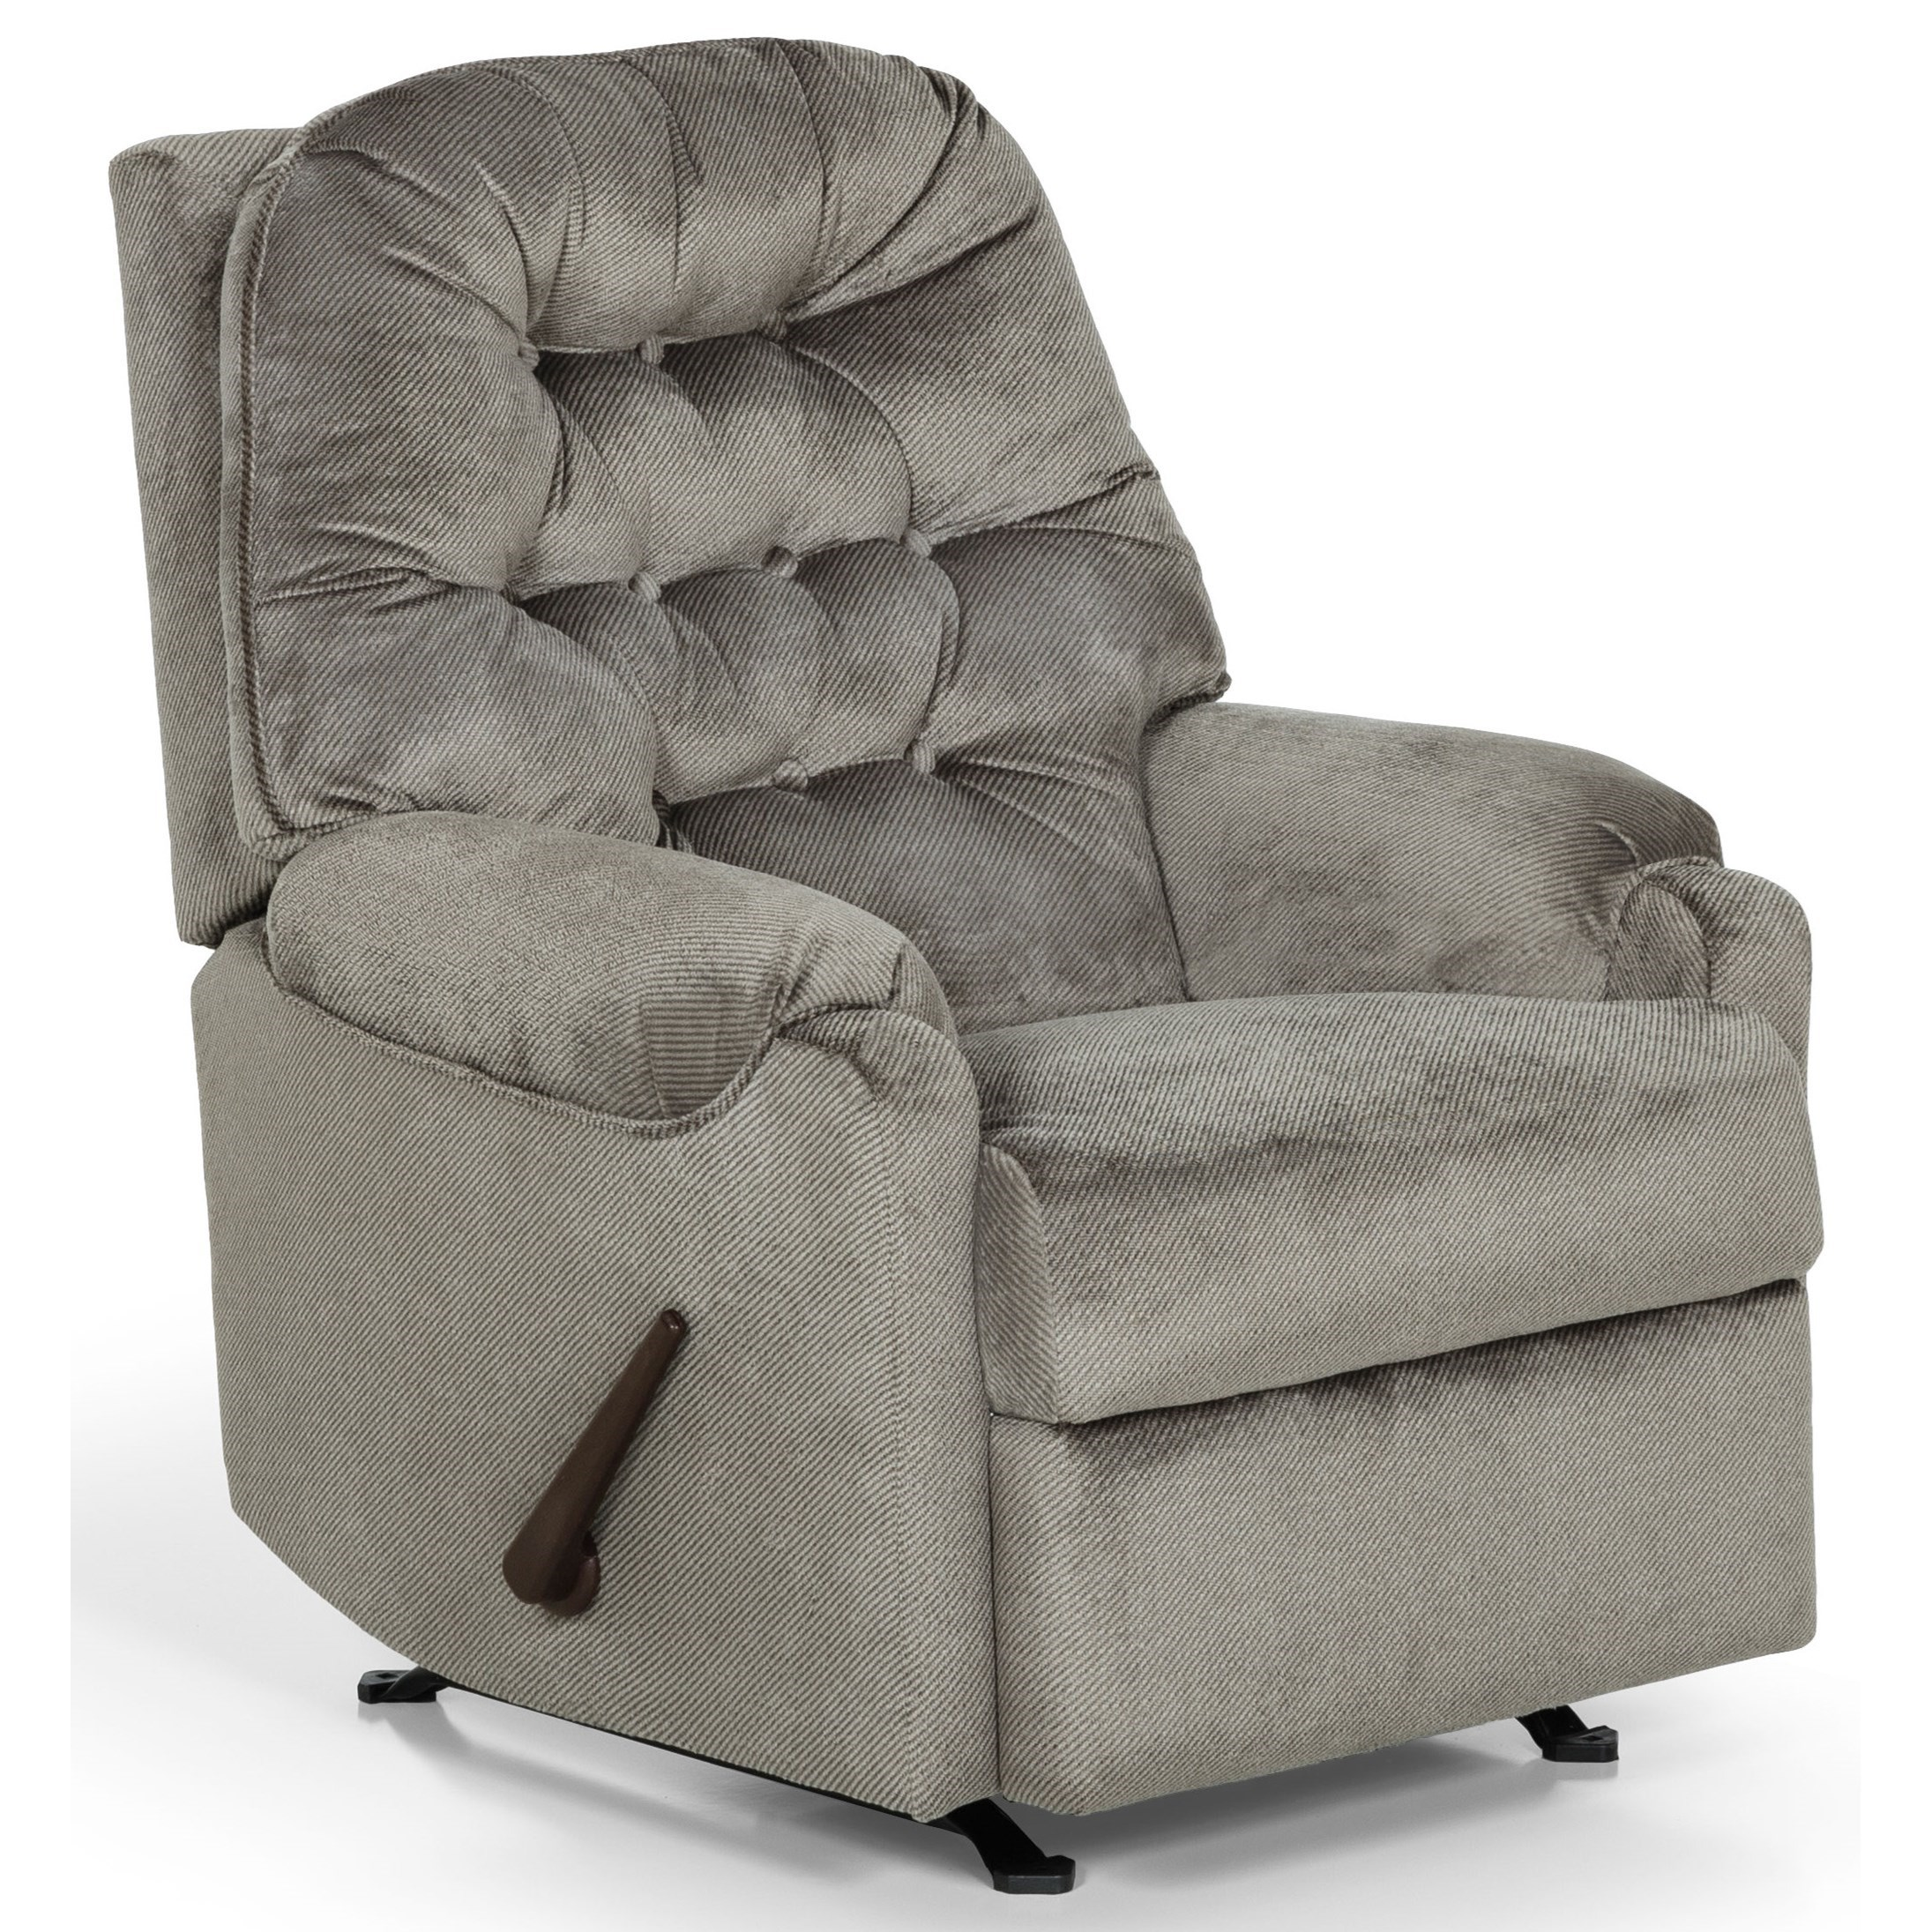 883 Swivel Gliding Reclining Chair by Sunset Home at Sadler's Home Furnishings